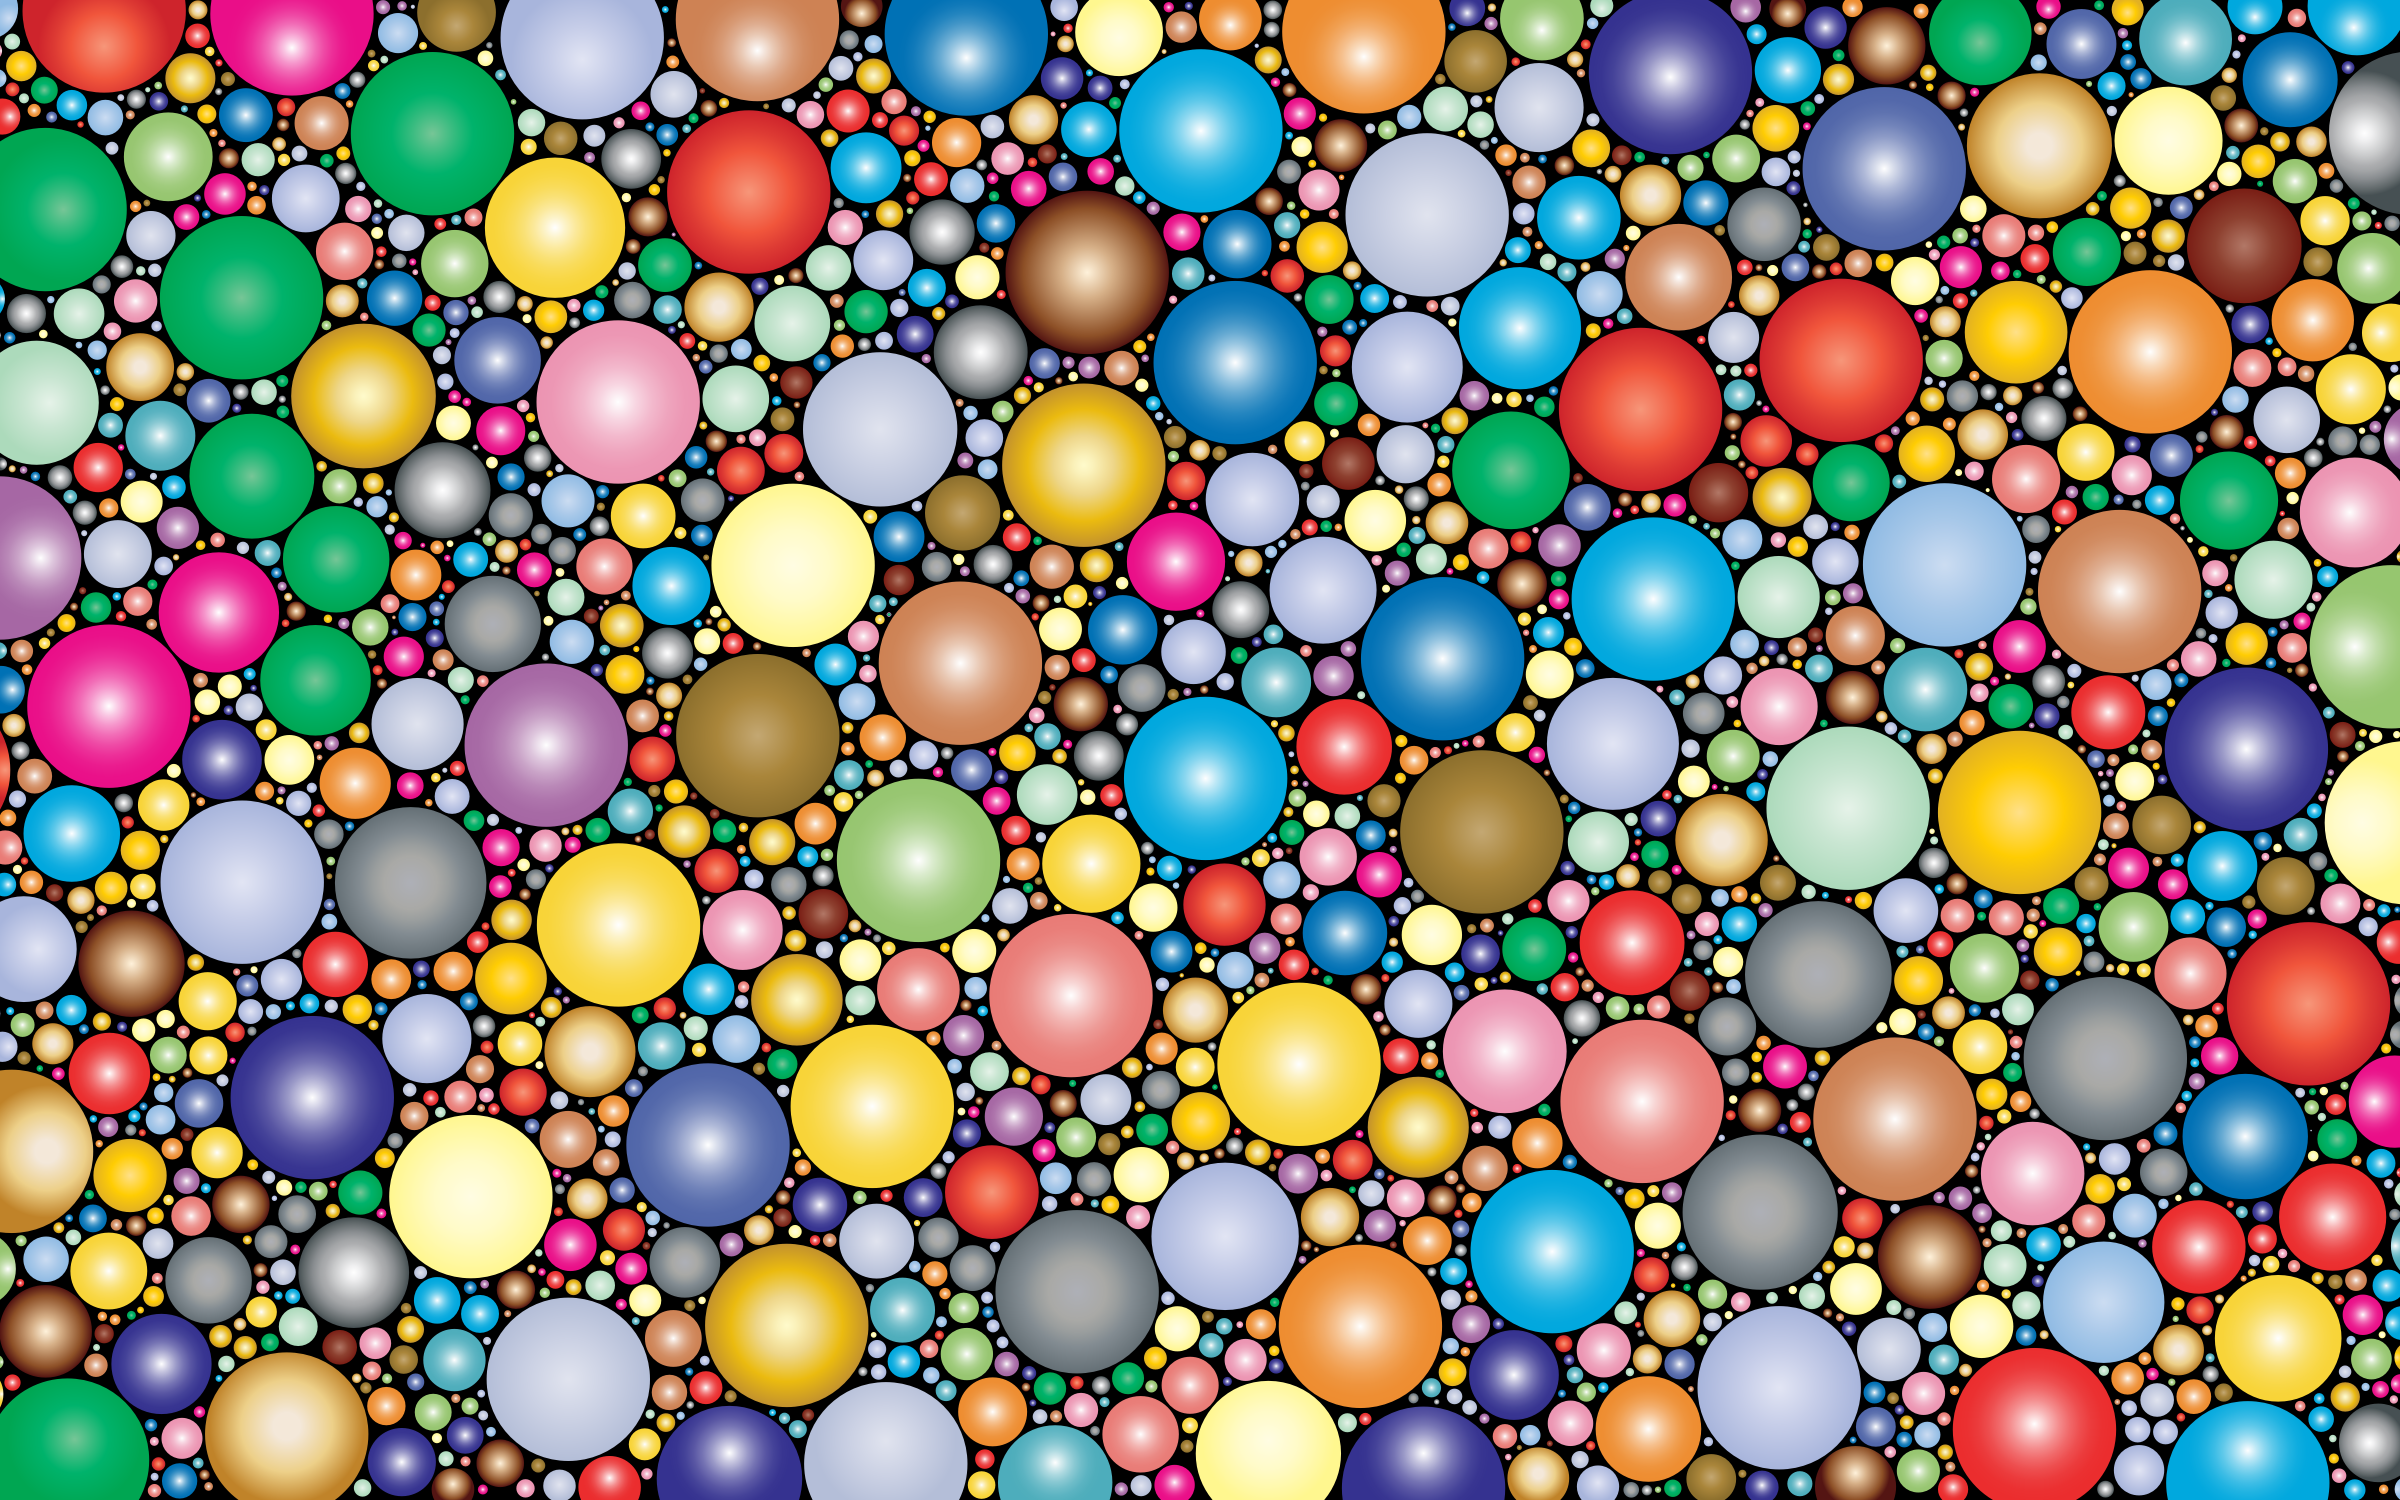 Prismatic Packed Circles 3 by GDJ